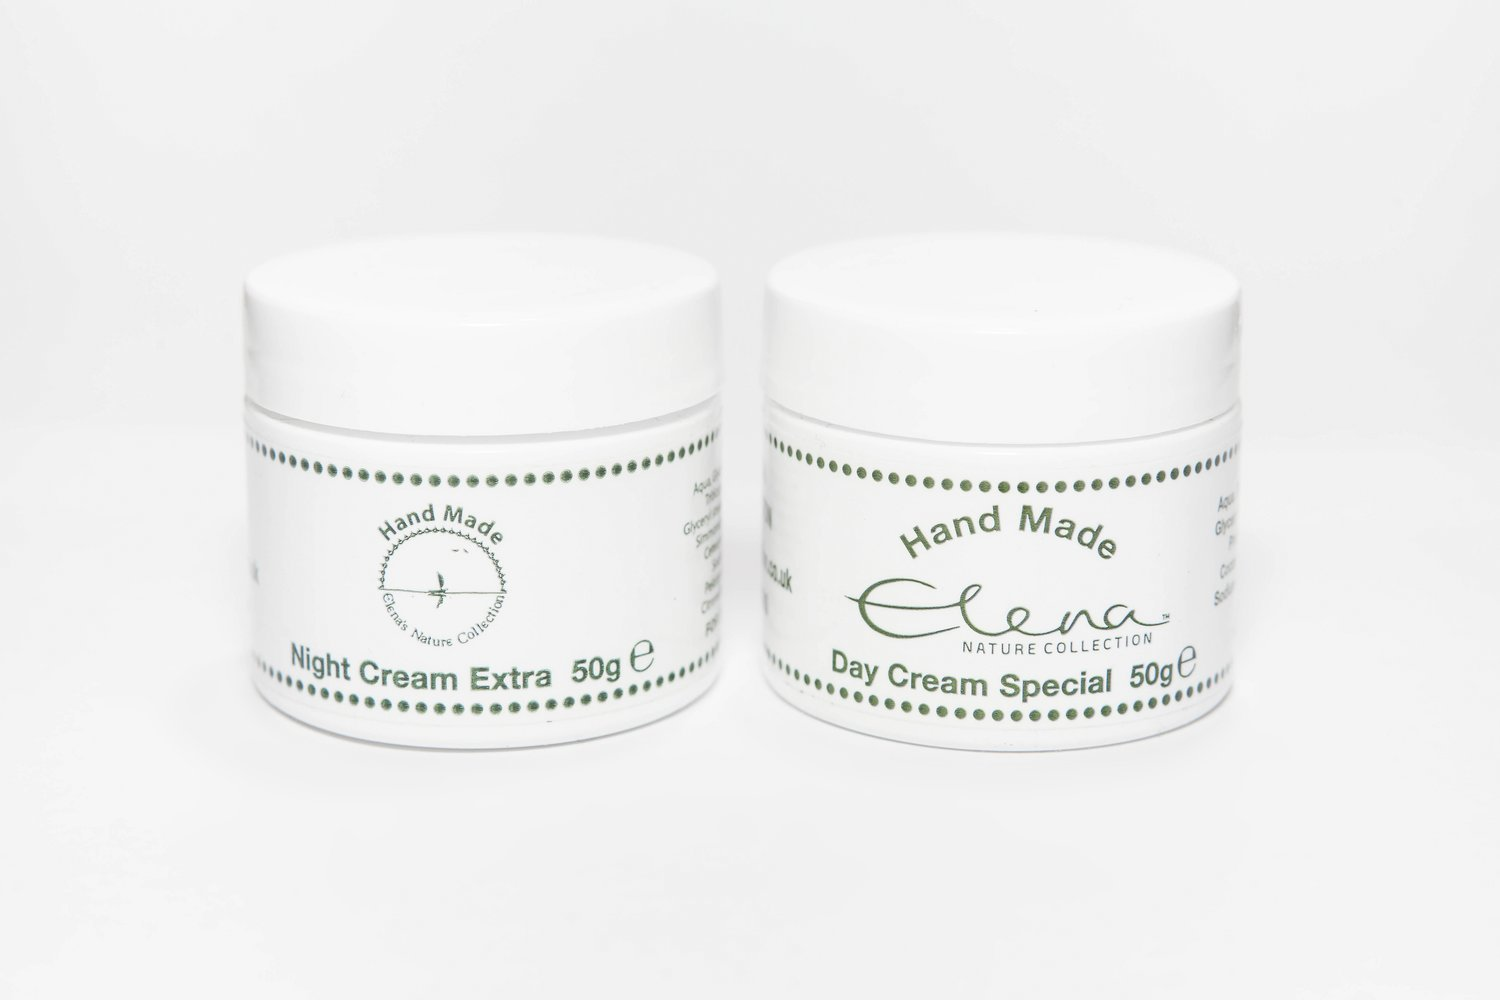 Day Cream Special and Night Cream Extra 50g of each